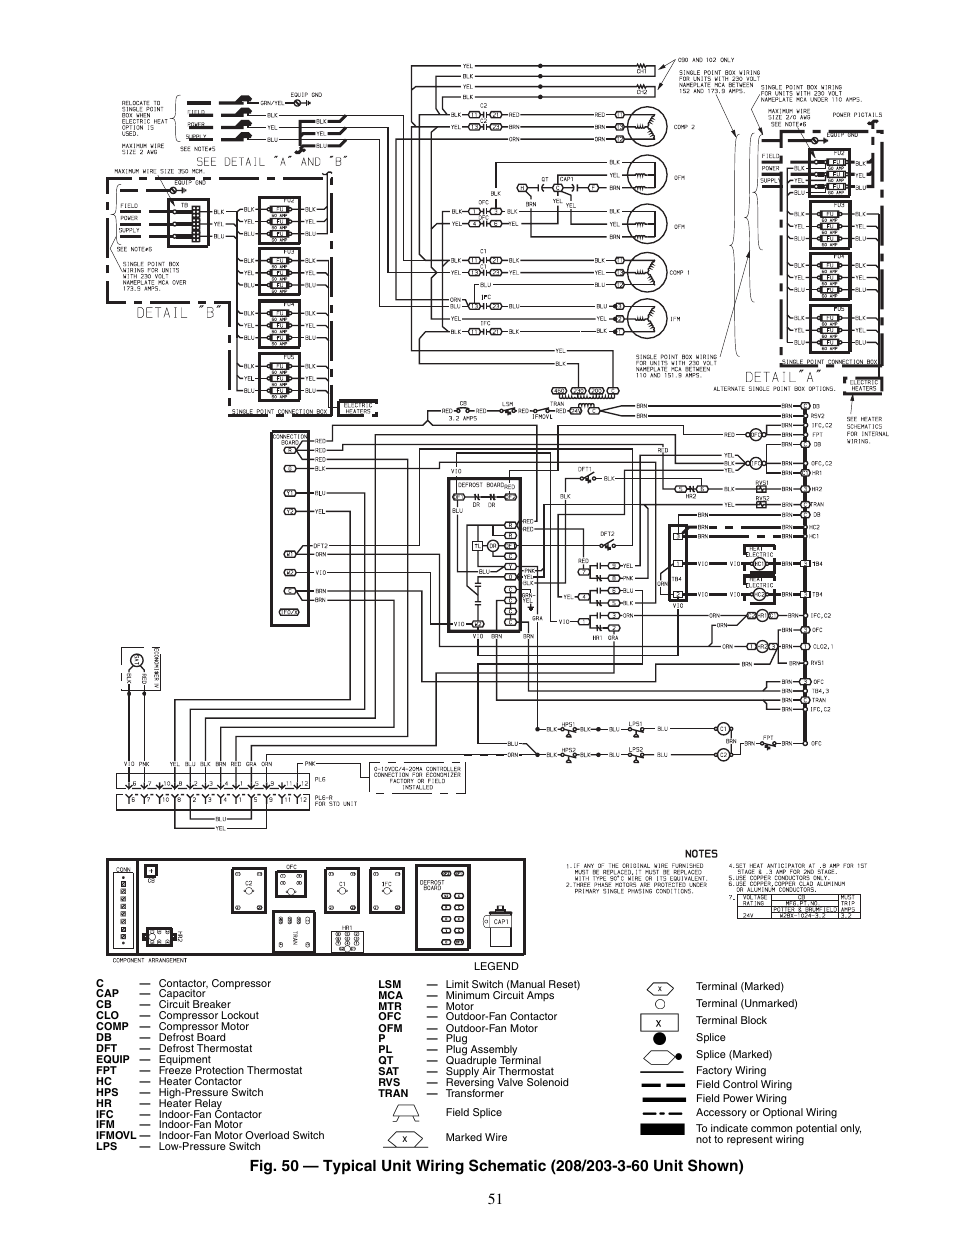 carrier compressor schematic